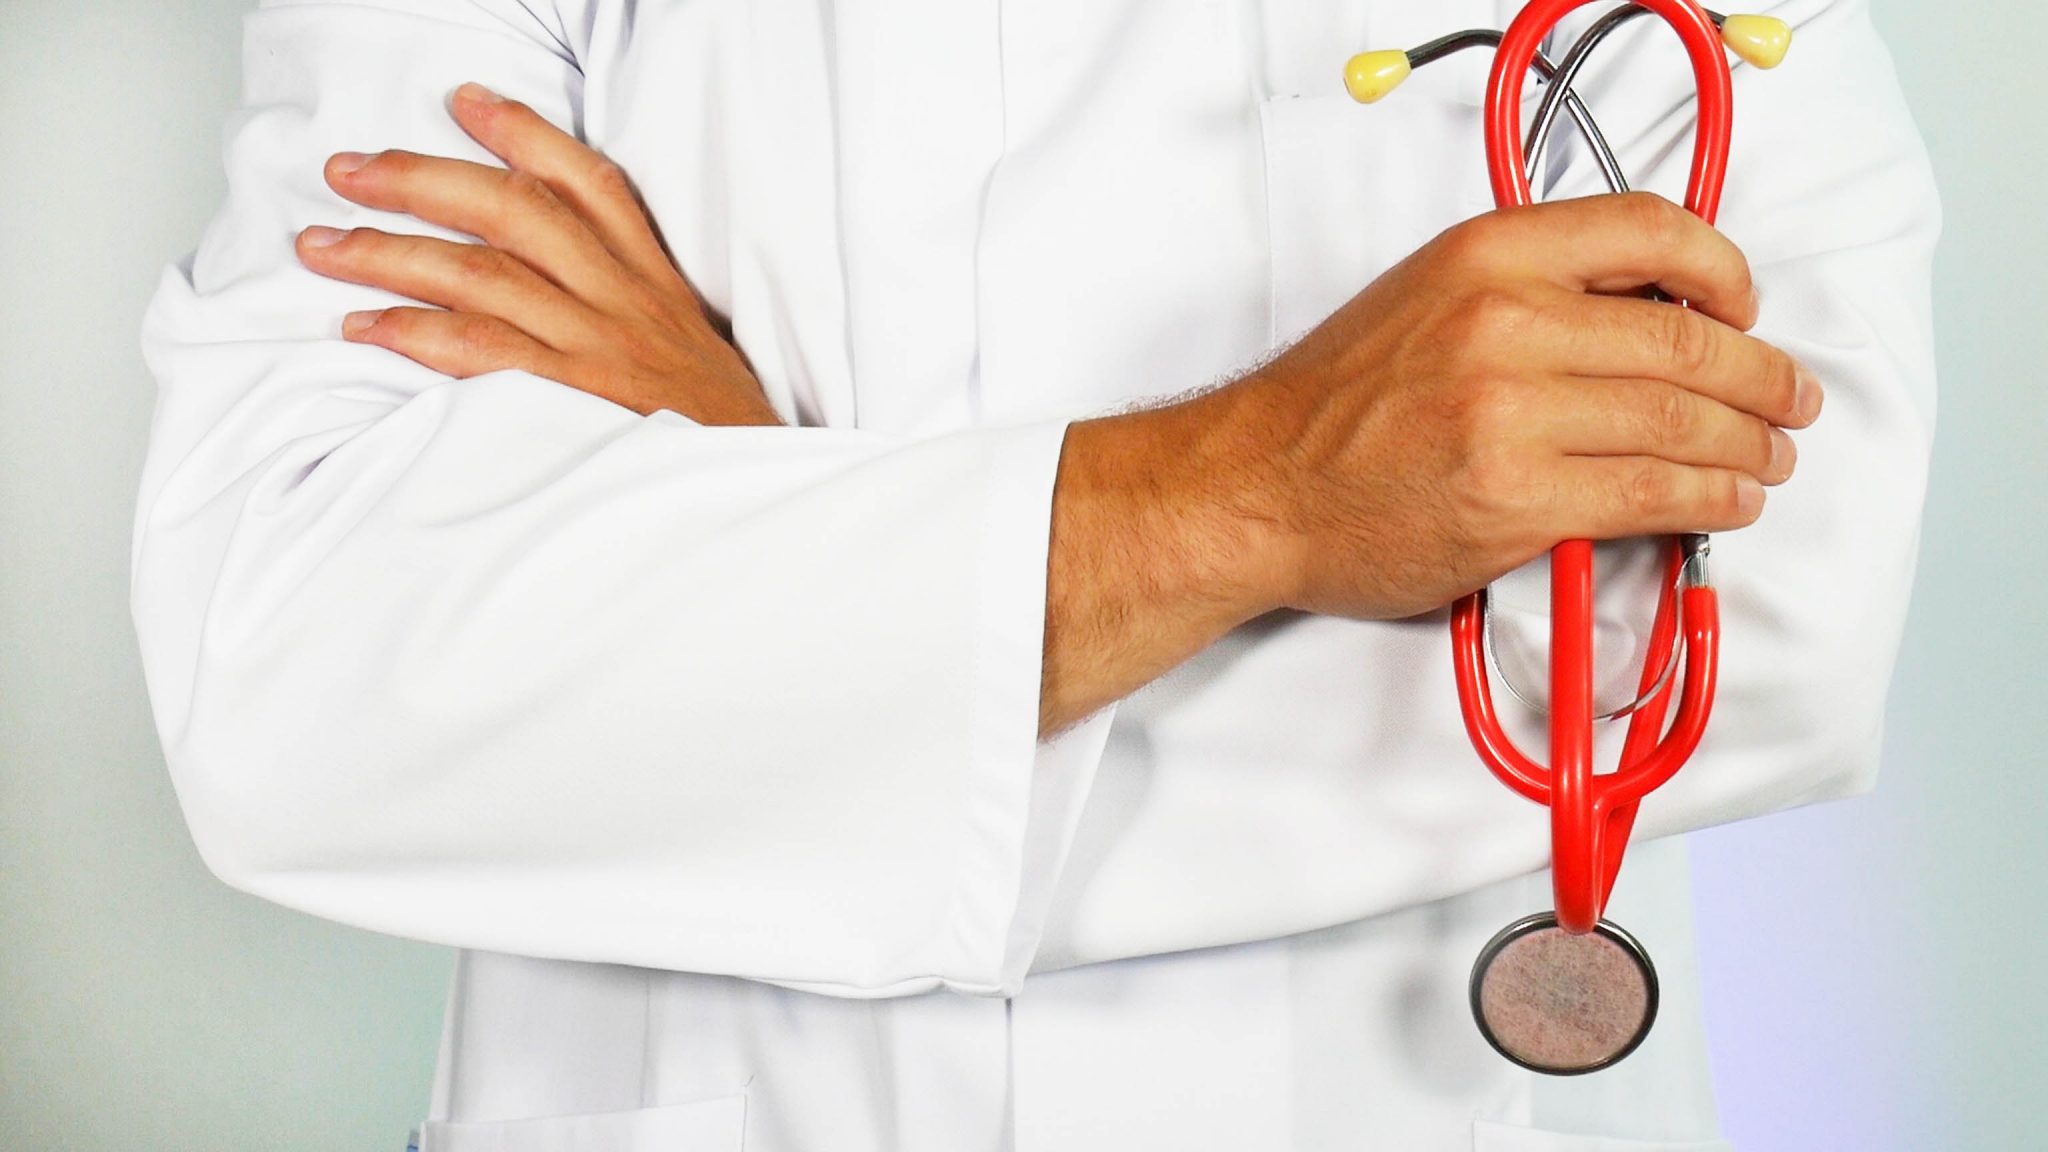 Addressing an American doctor with the right medical terms?